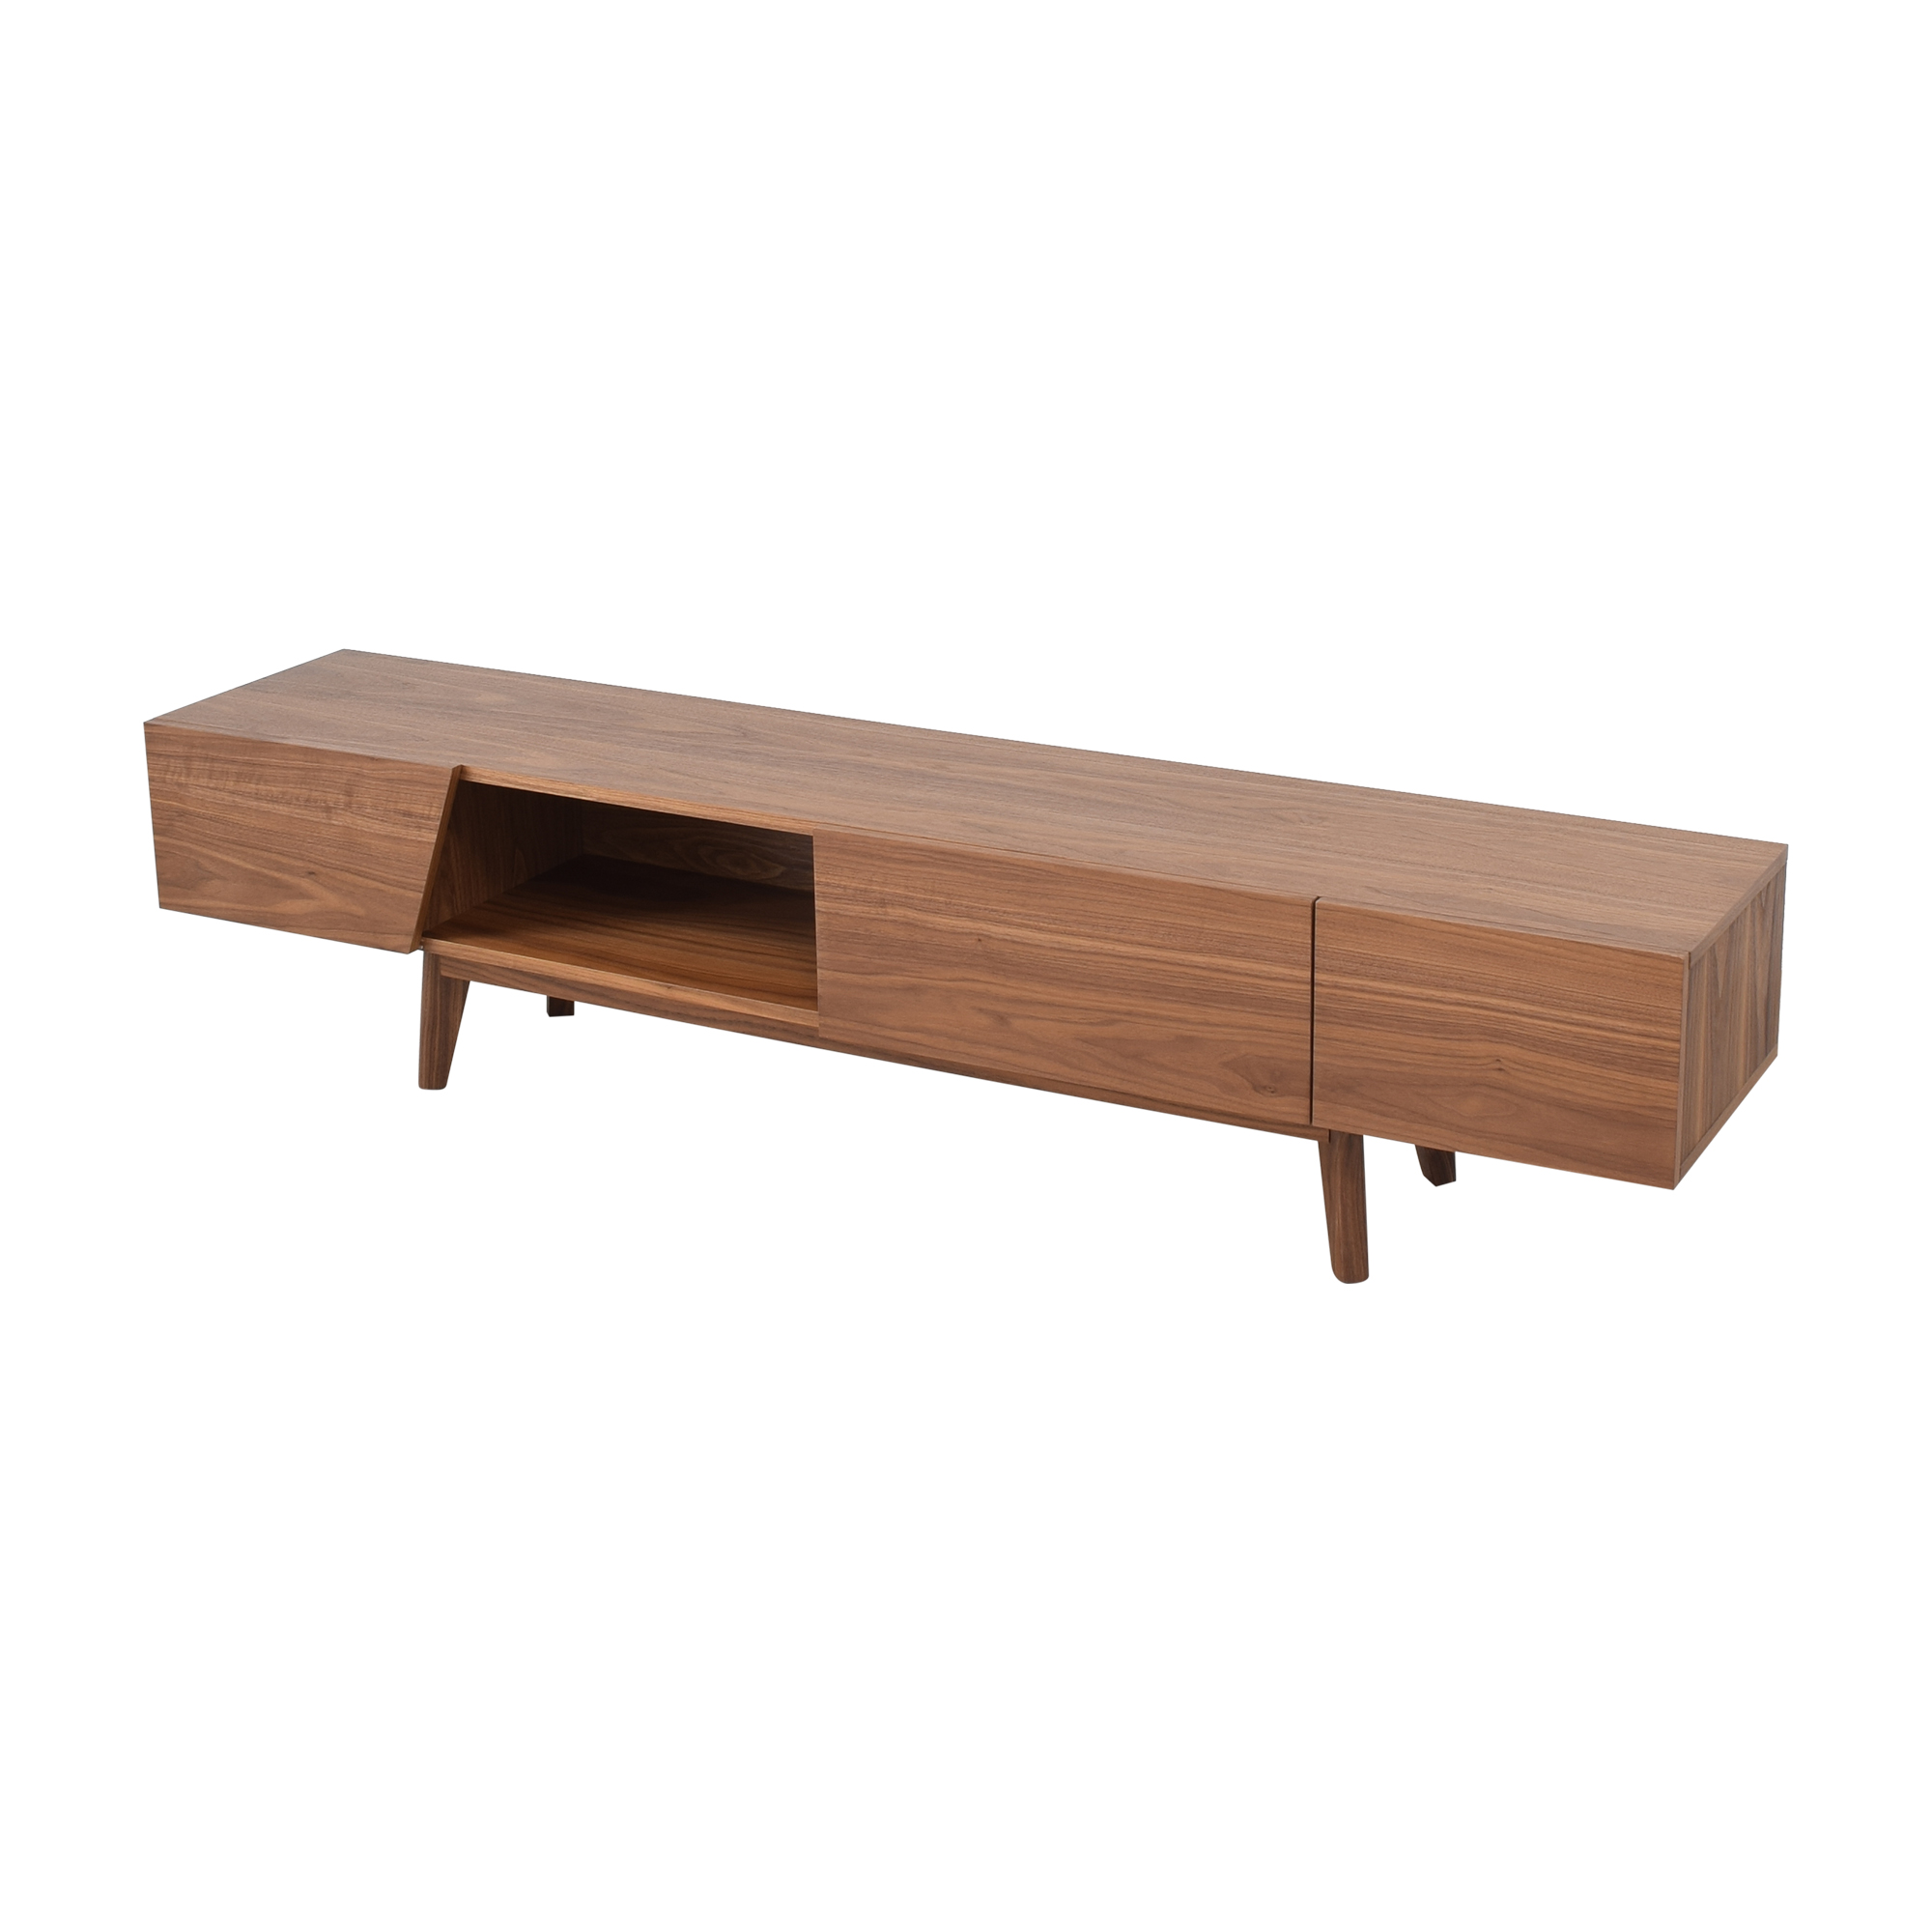 Modani Modani Cama TV Stand Walnut price